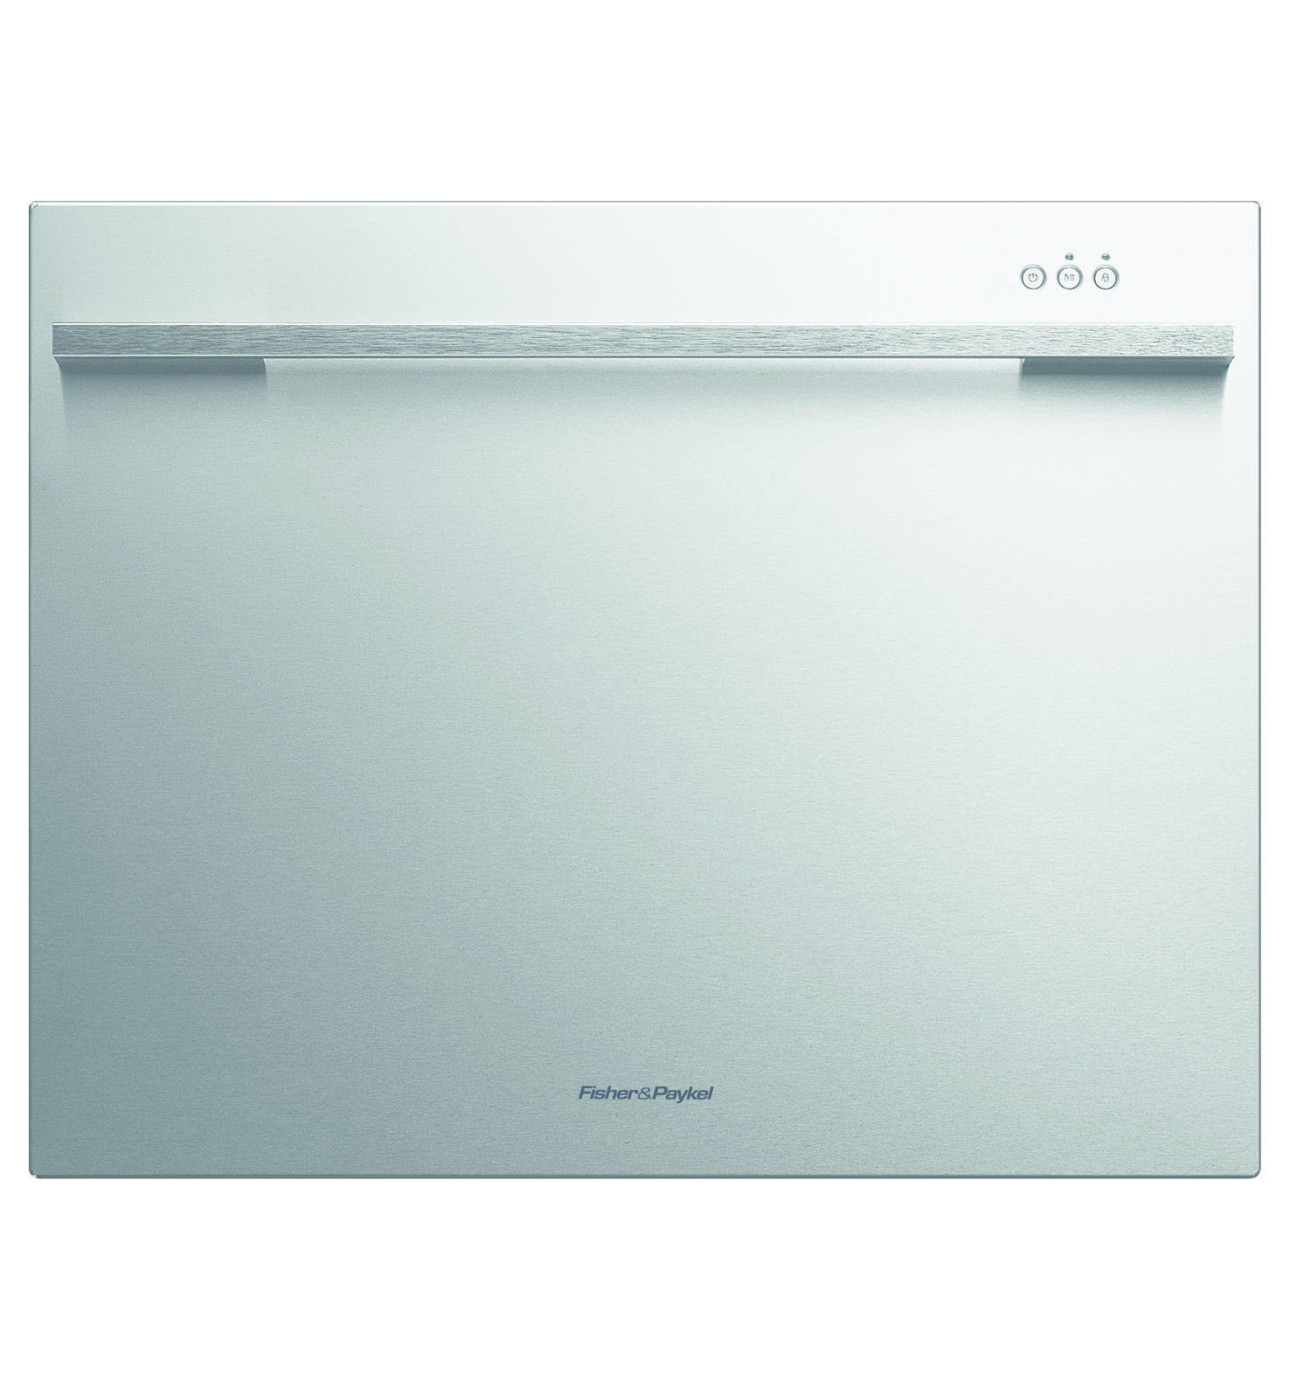 Dishwasher Drawers Vs Standard Dd60sti7 Integrated 7 Place Setting Dishdrawer Dishwasher David